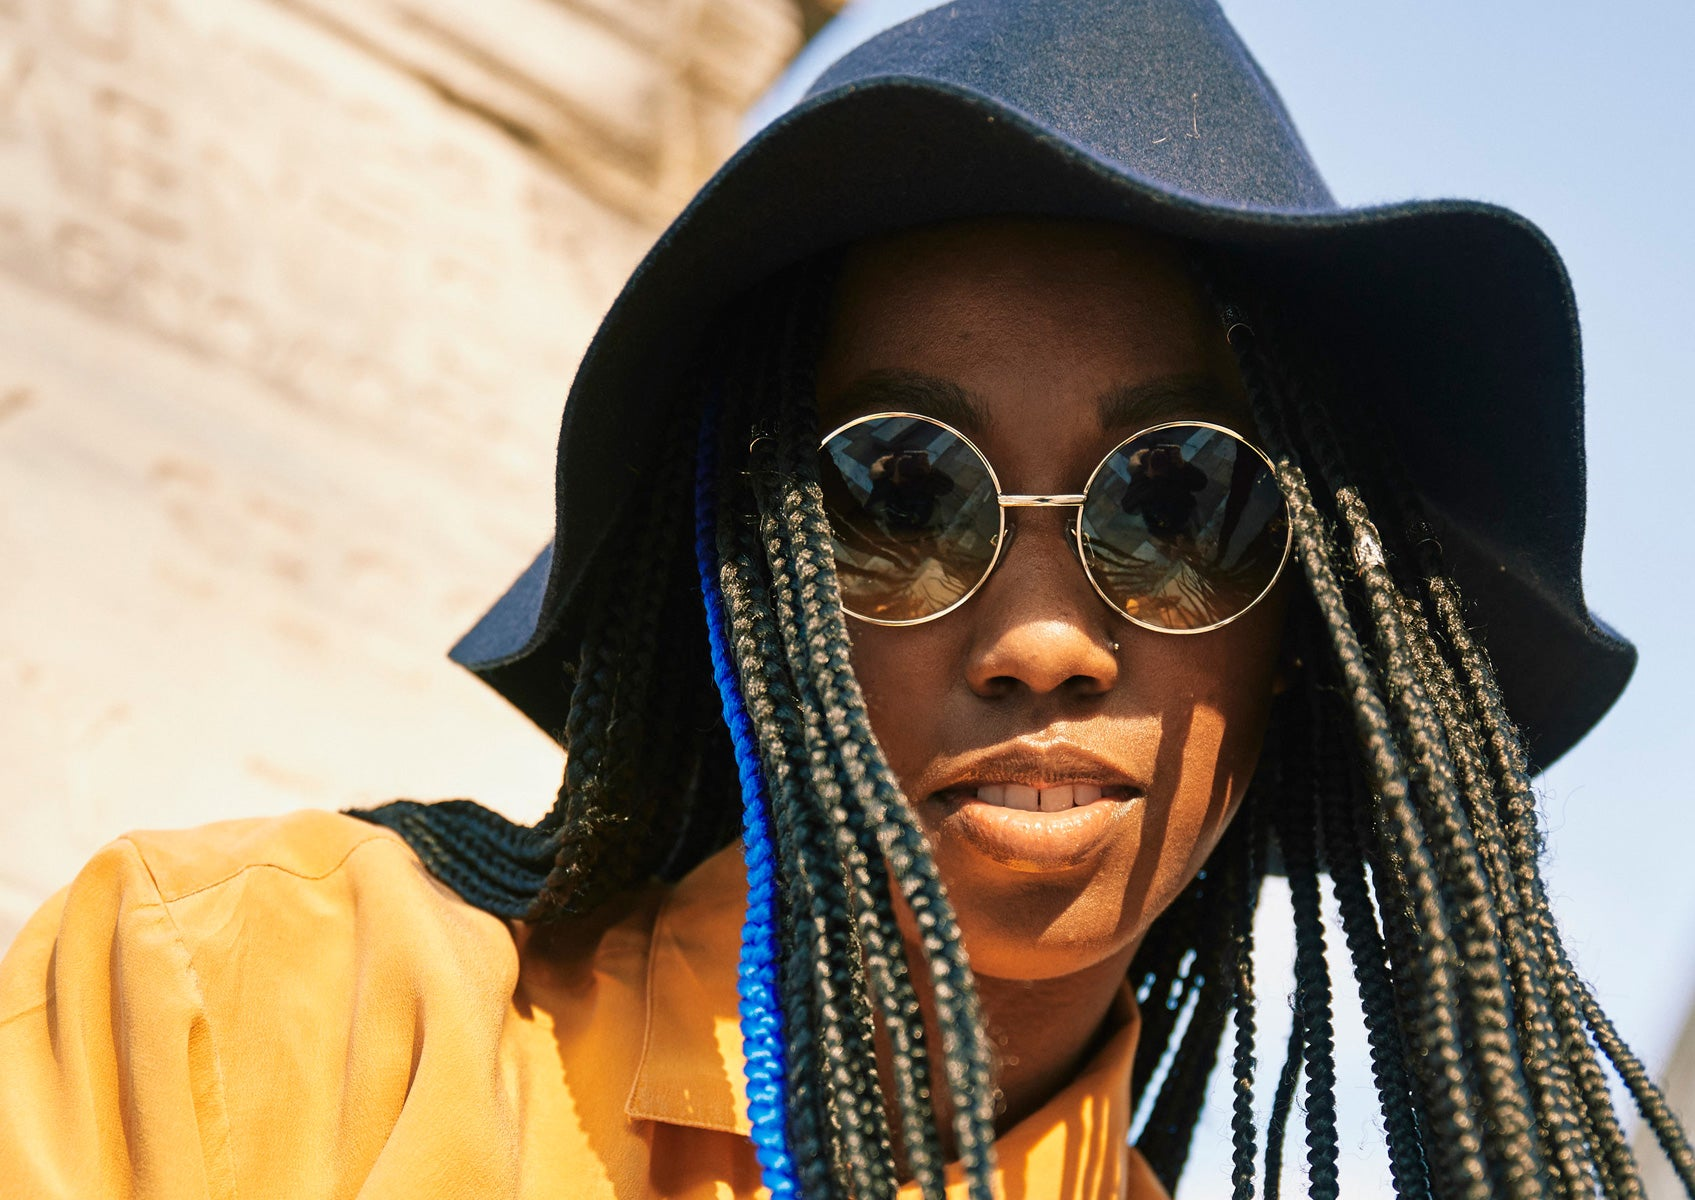 Dominique Drakeford wearing a bucket hat and sunglasses